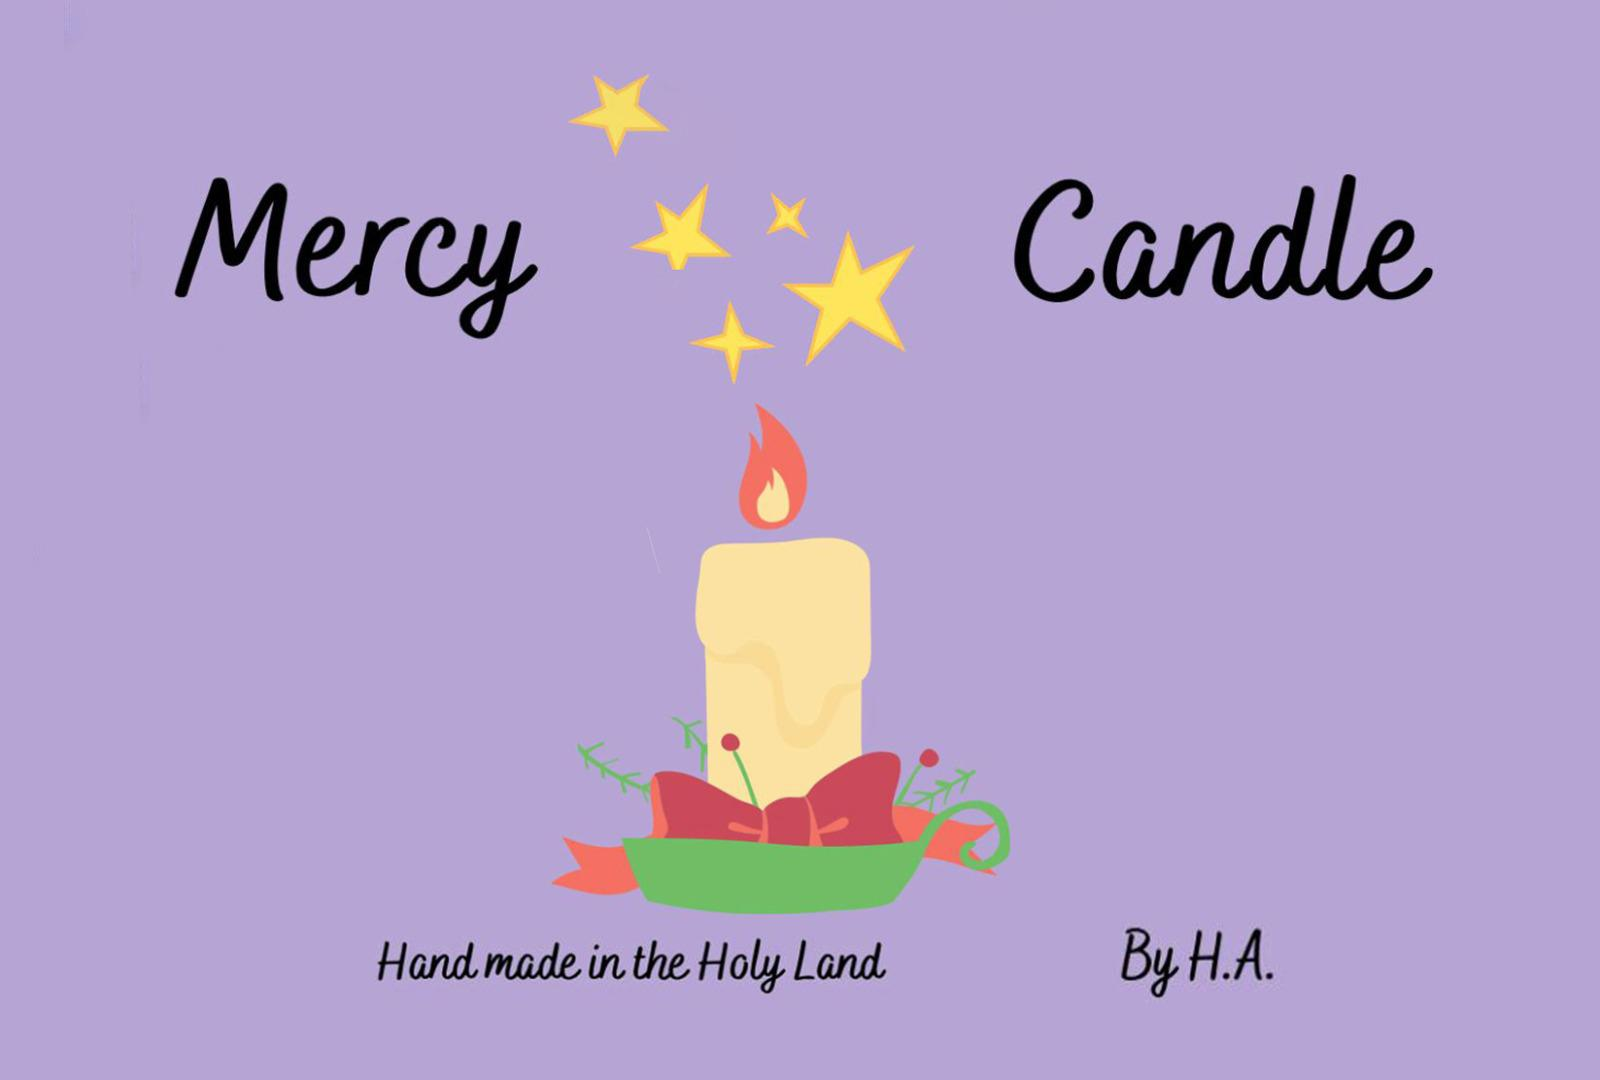 Mercy Candle